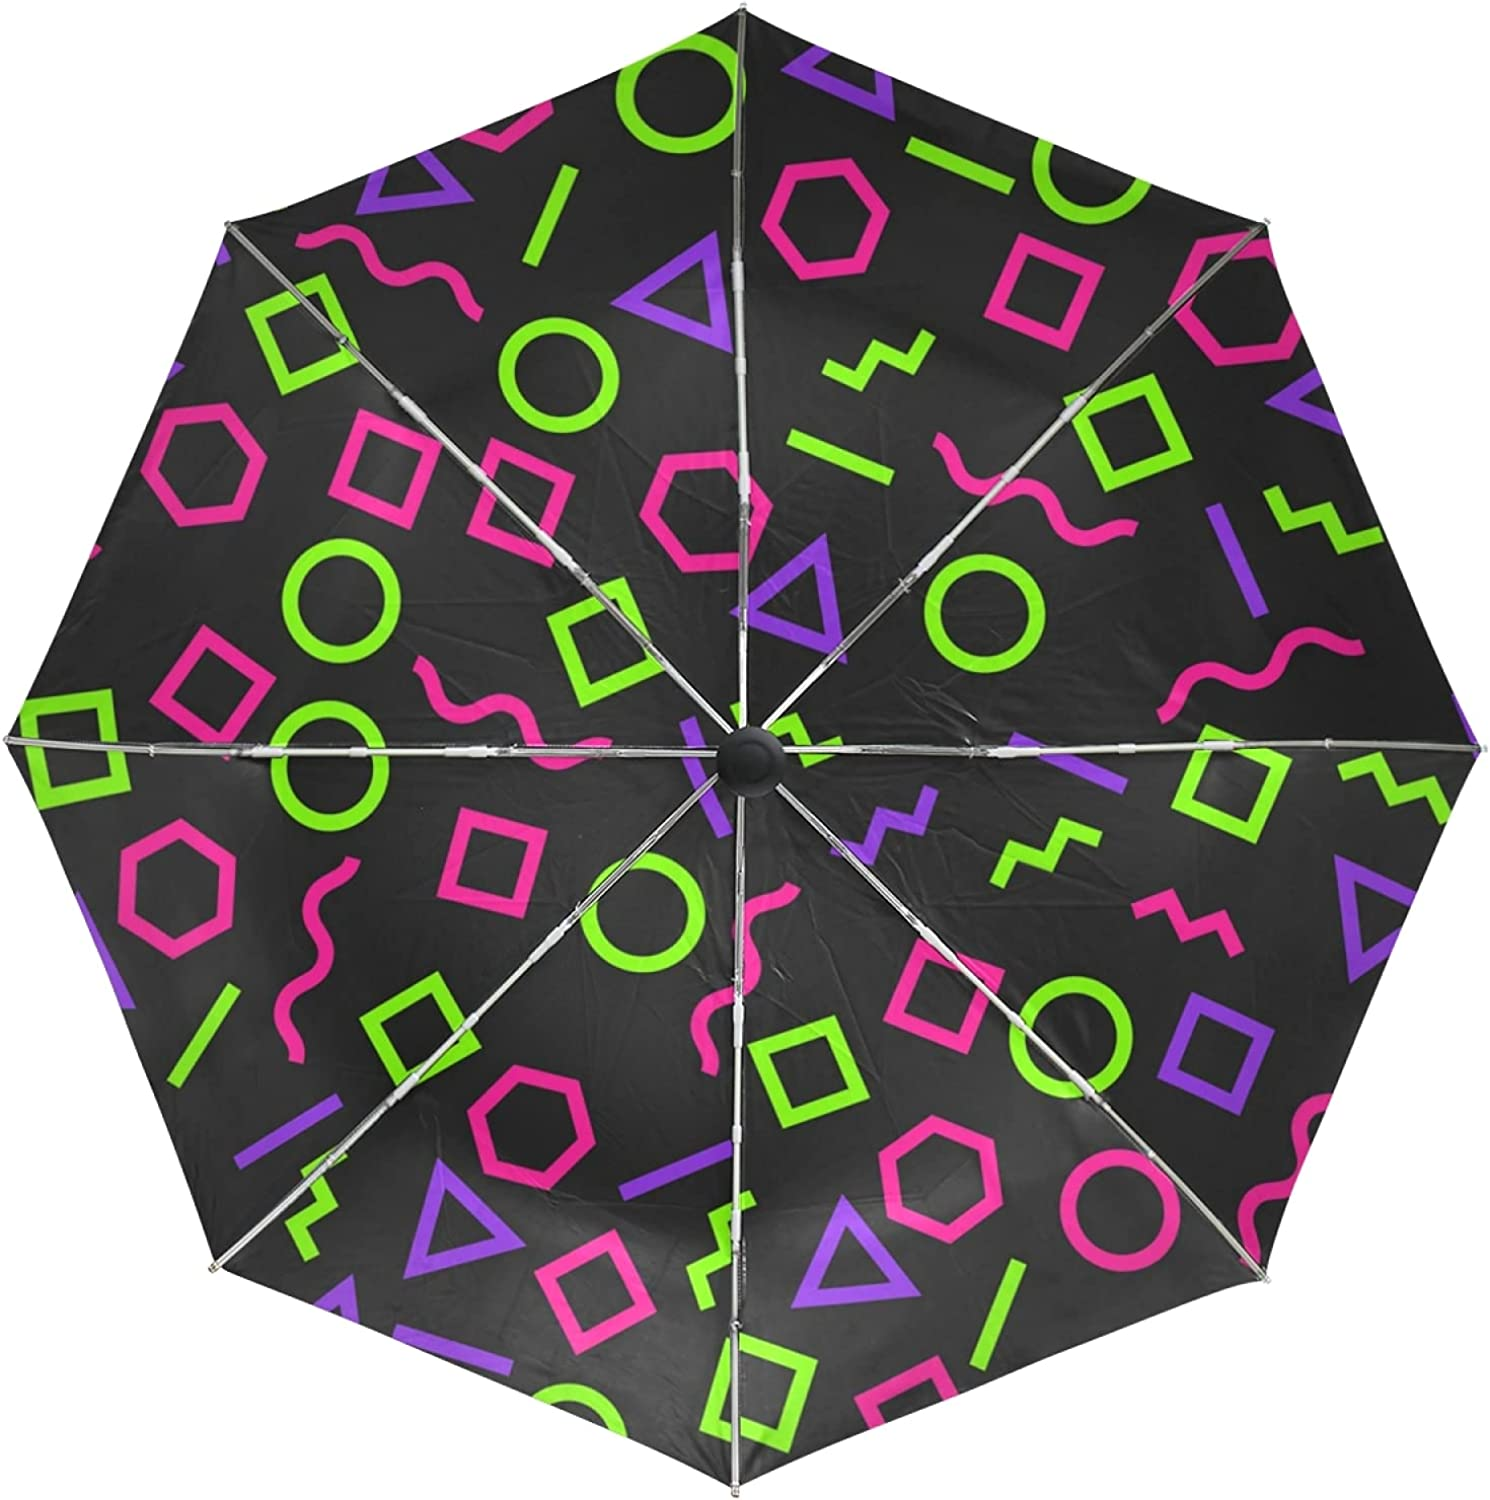 Geometric Abstract Art Automatic Animer and price revision Classic Umbrella Protection UV Foldable